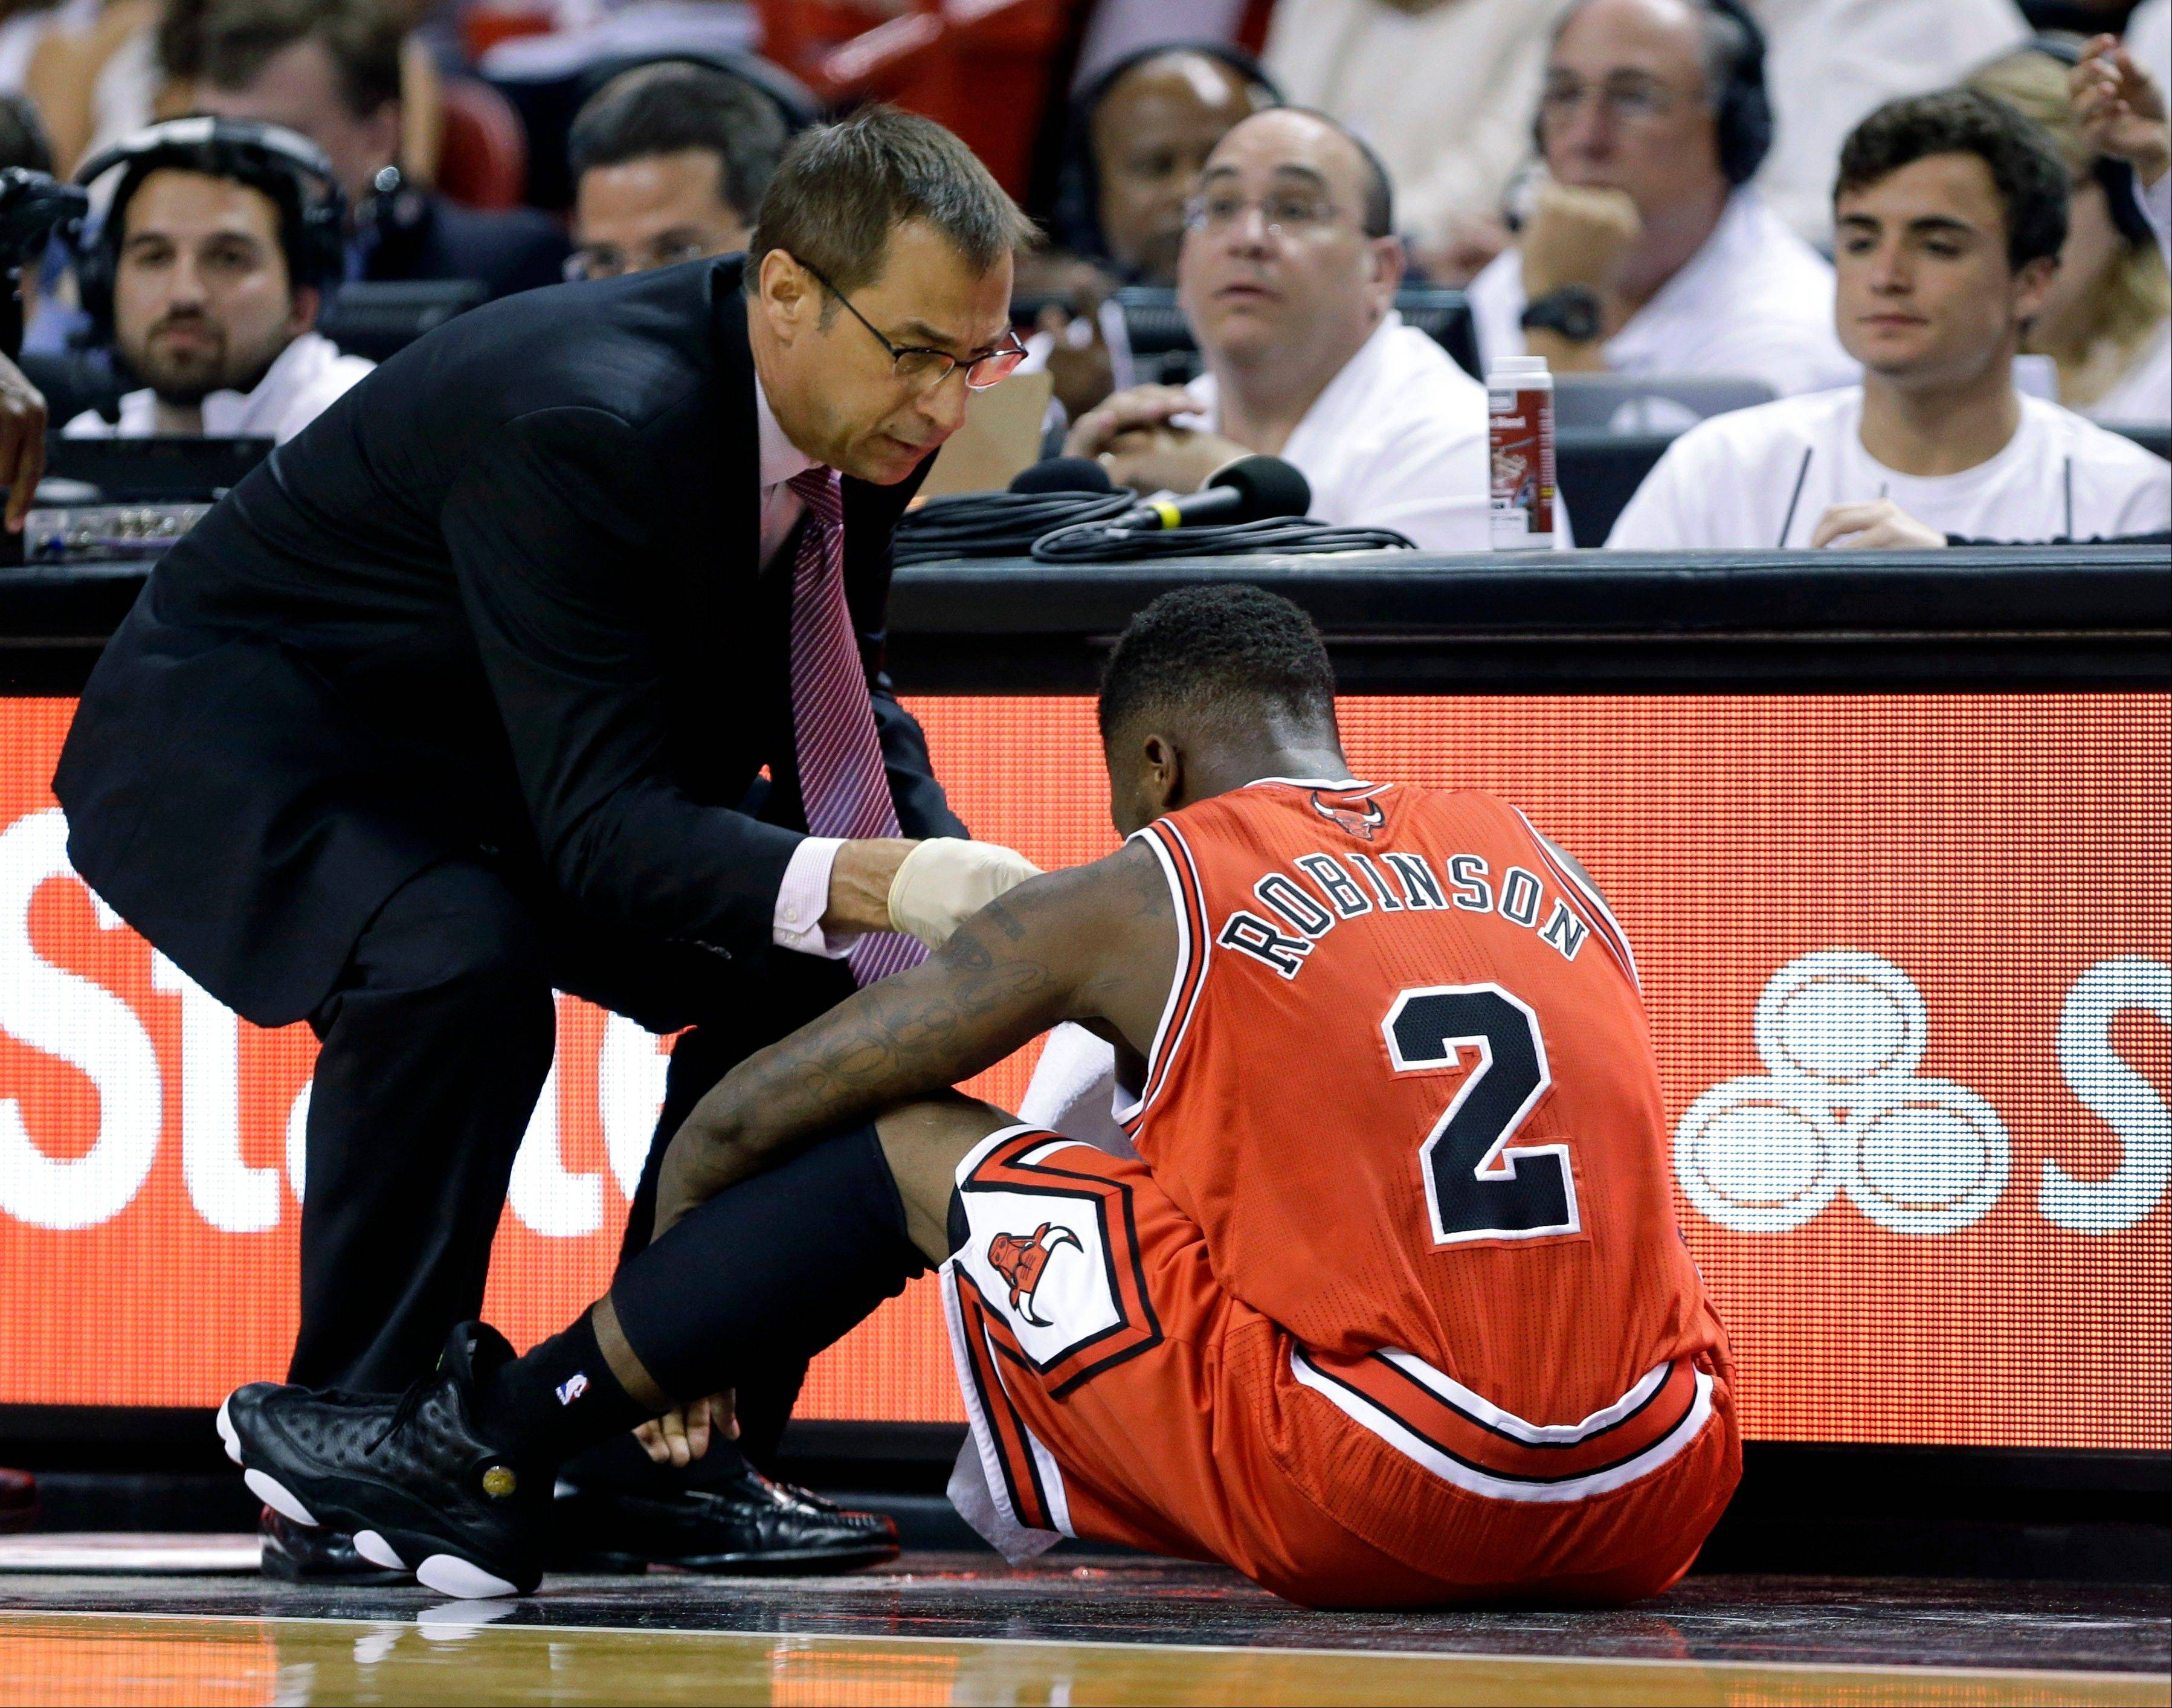 Chicago Bulls guard Nate Robinson (2) is tended to after an injury during the first half of Game 1 of the NBA basketball playoff series in the Eastern Conference semifinals against the Miami Heat, Monday, May 6, 2013 in Miami.